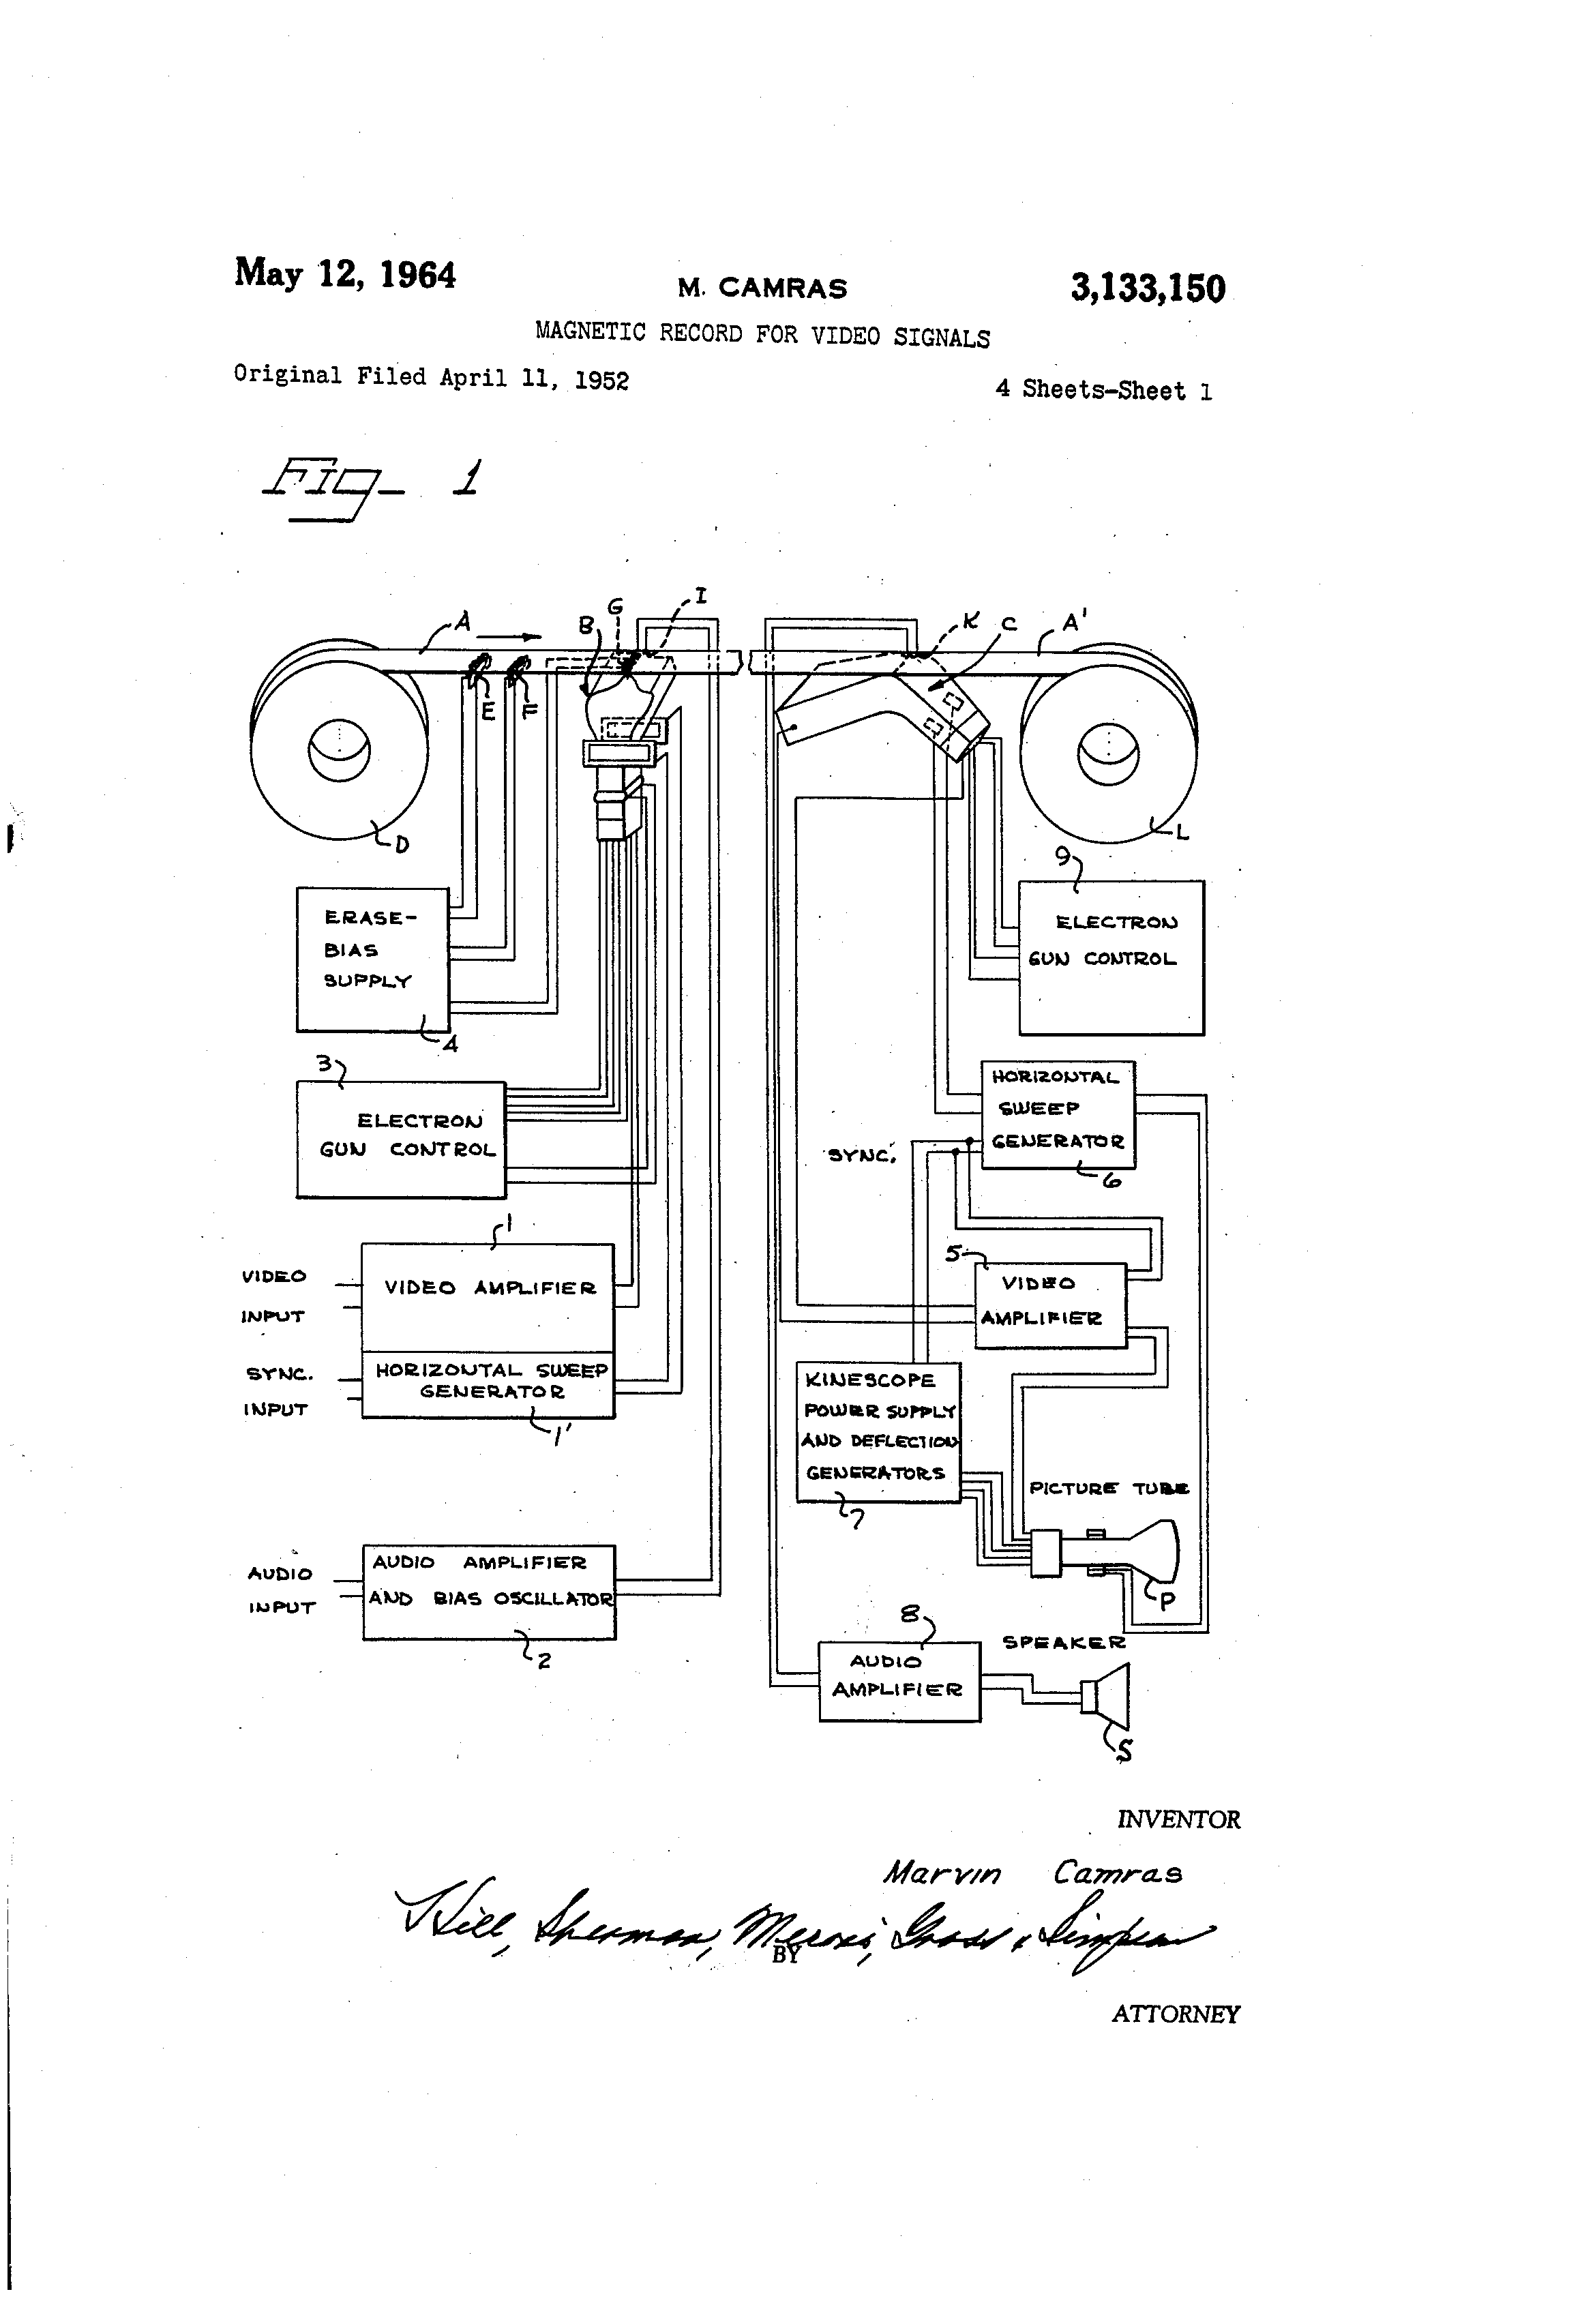 Patent US3133150 - Magnetic record for video signals